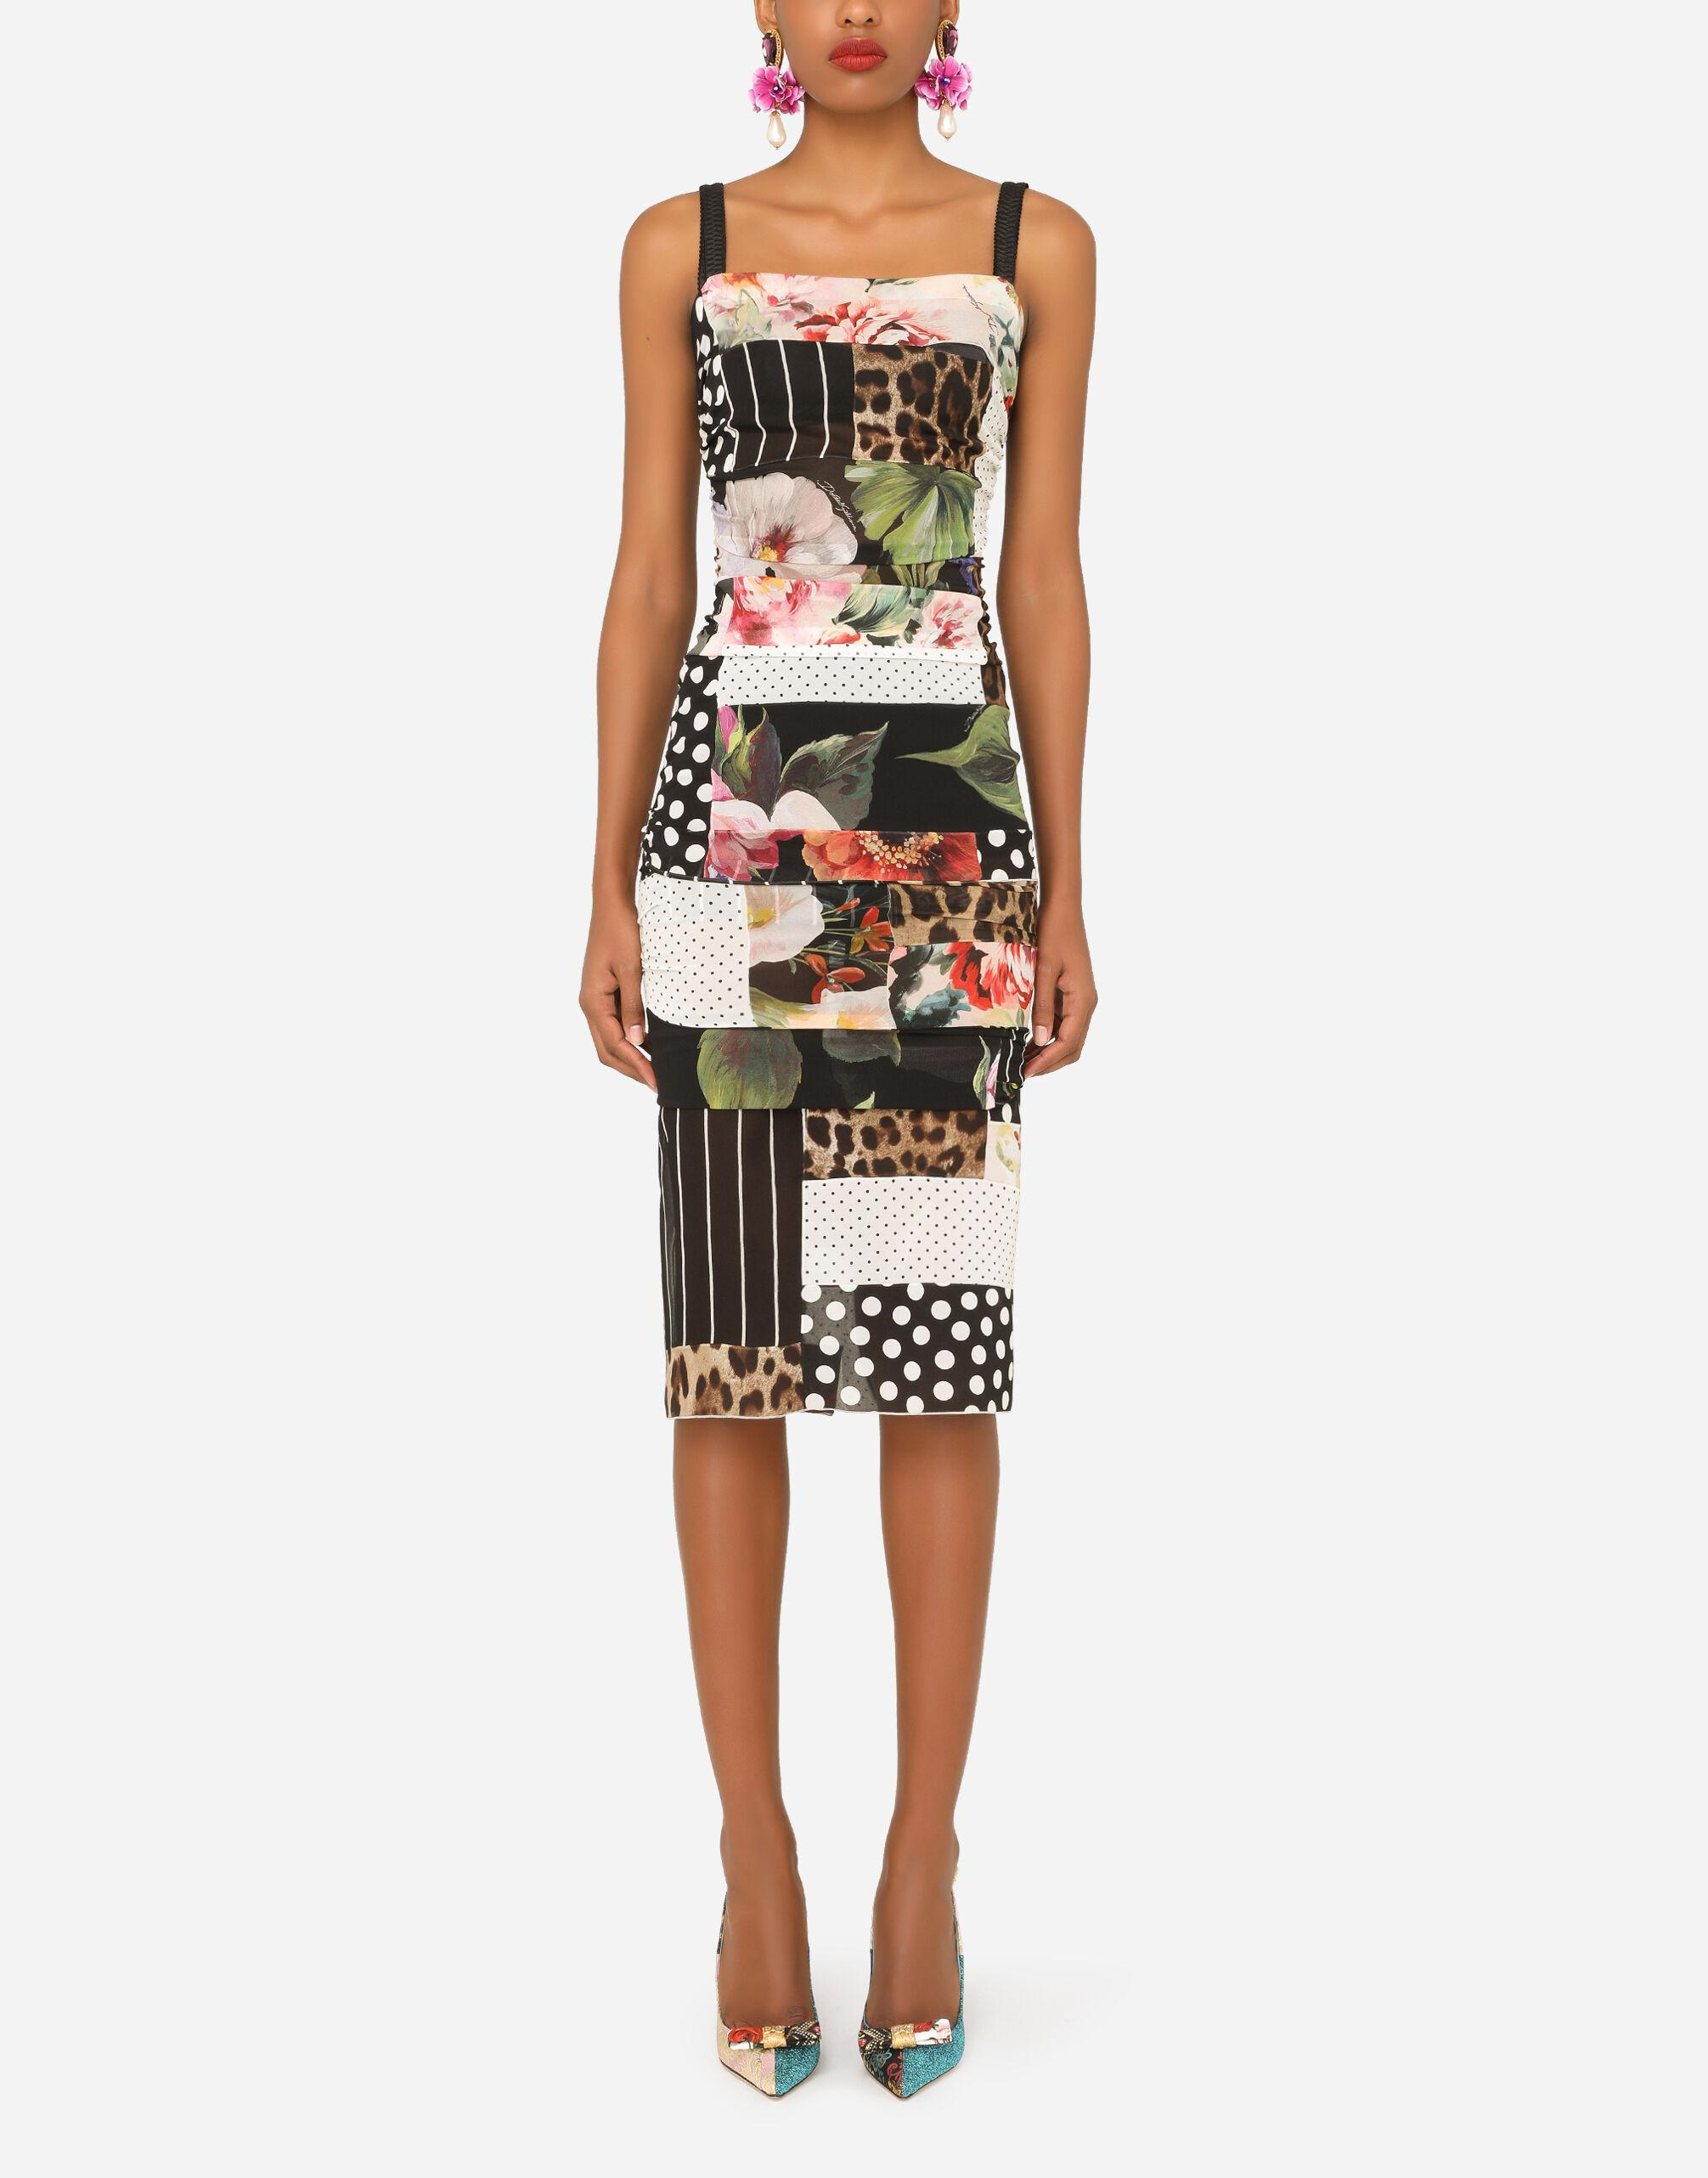 Patchwork chiffon and georgette dress with draping